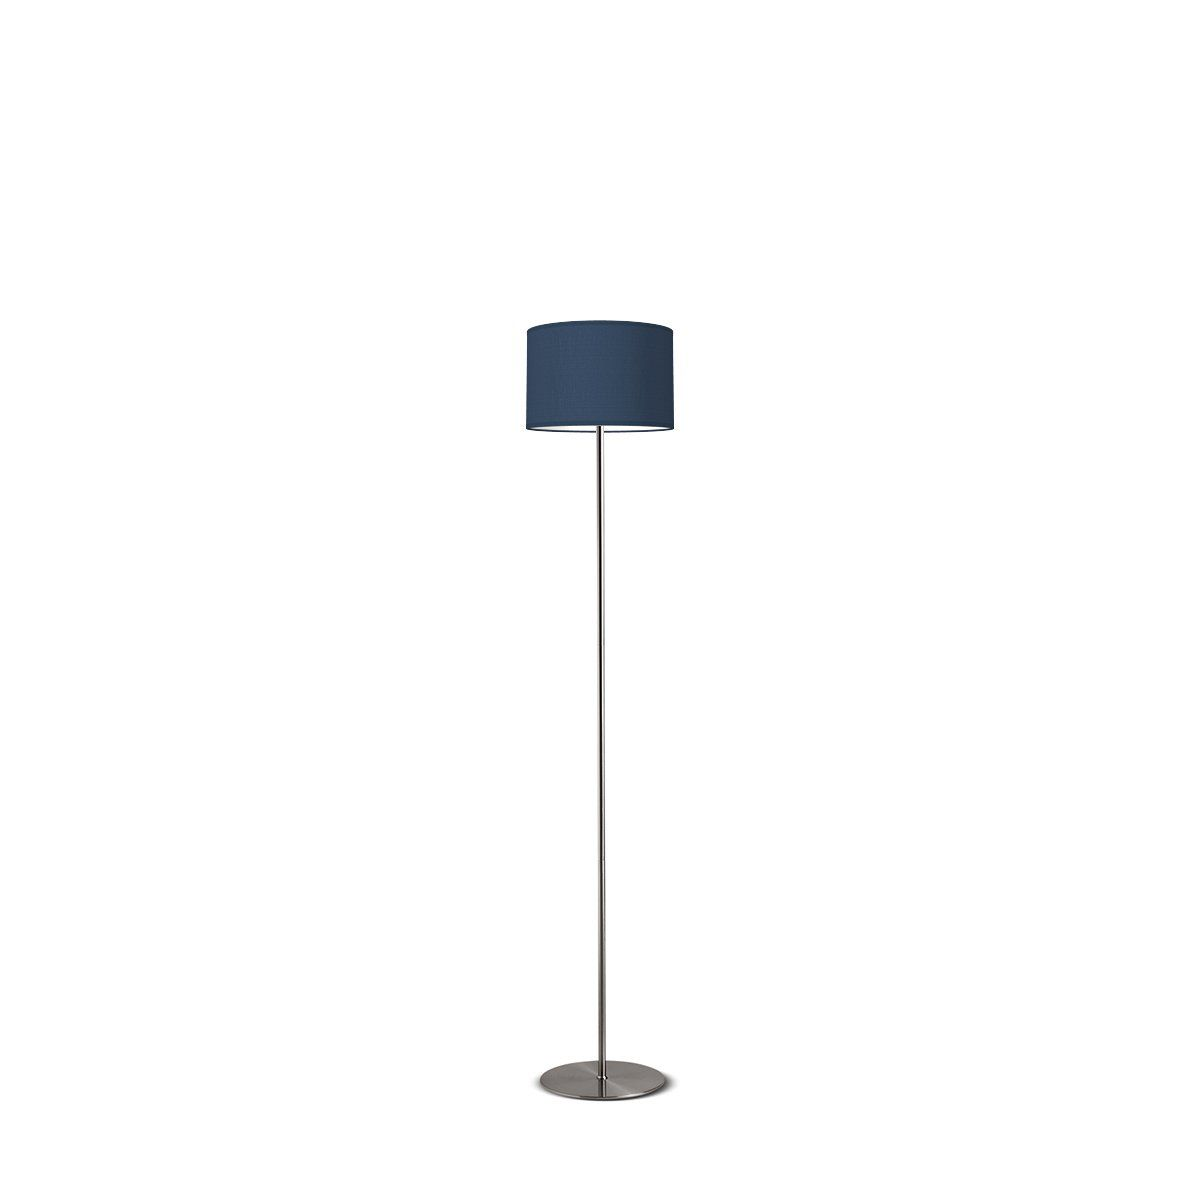 HOME SWEET HOME vloerlamp lift bling Ø 30 cm - Dark denim